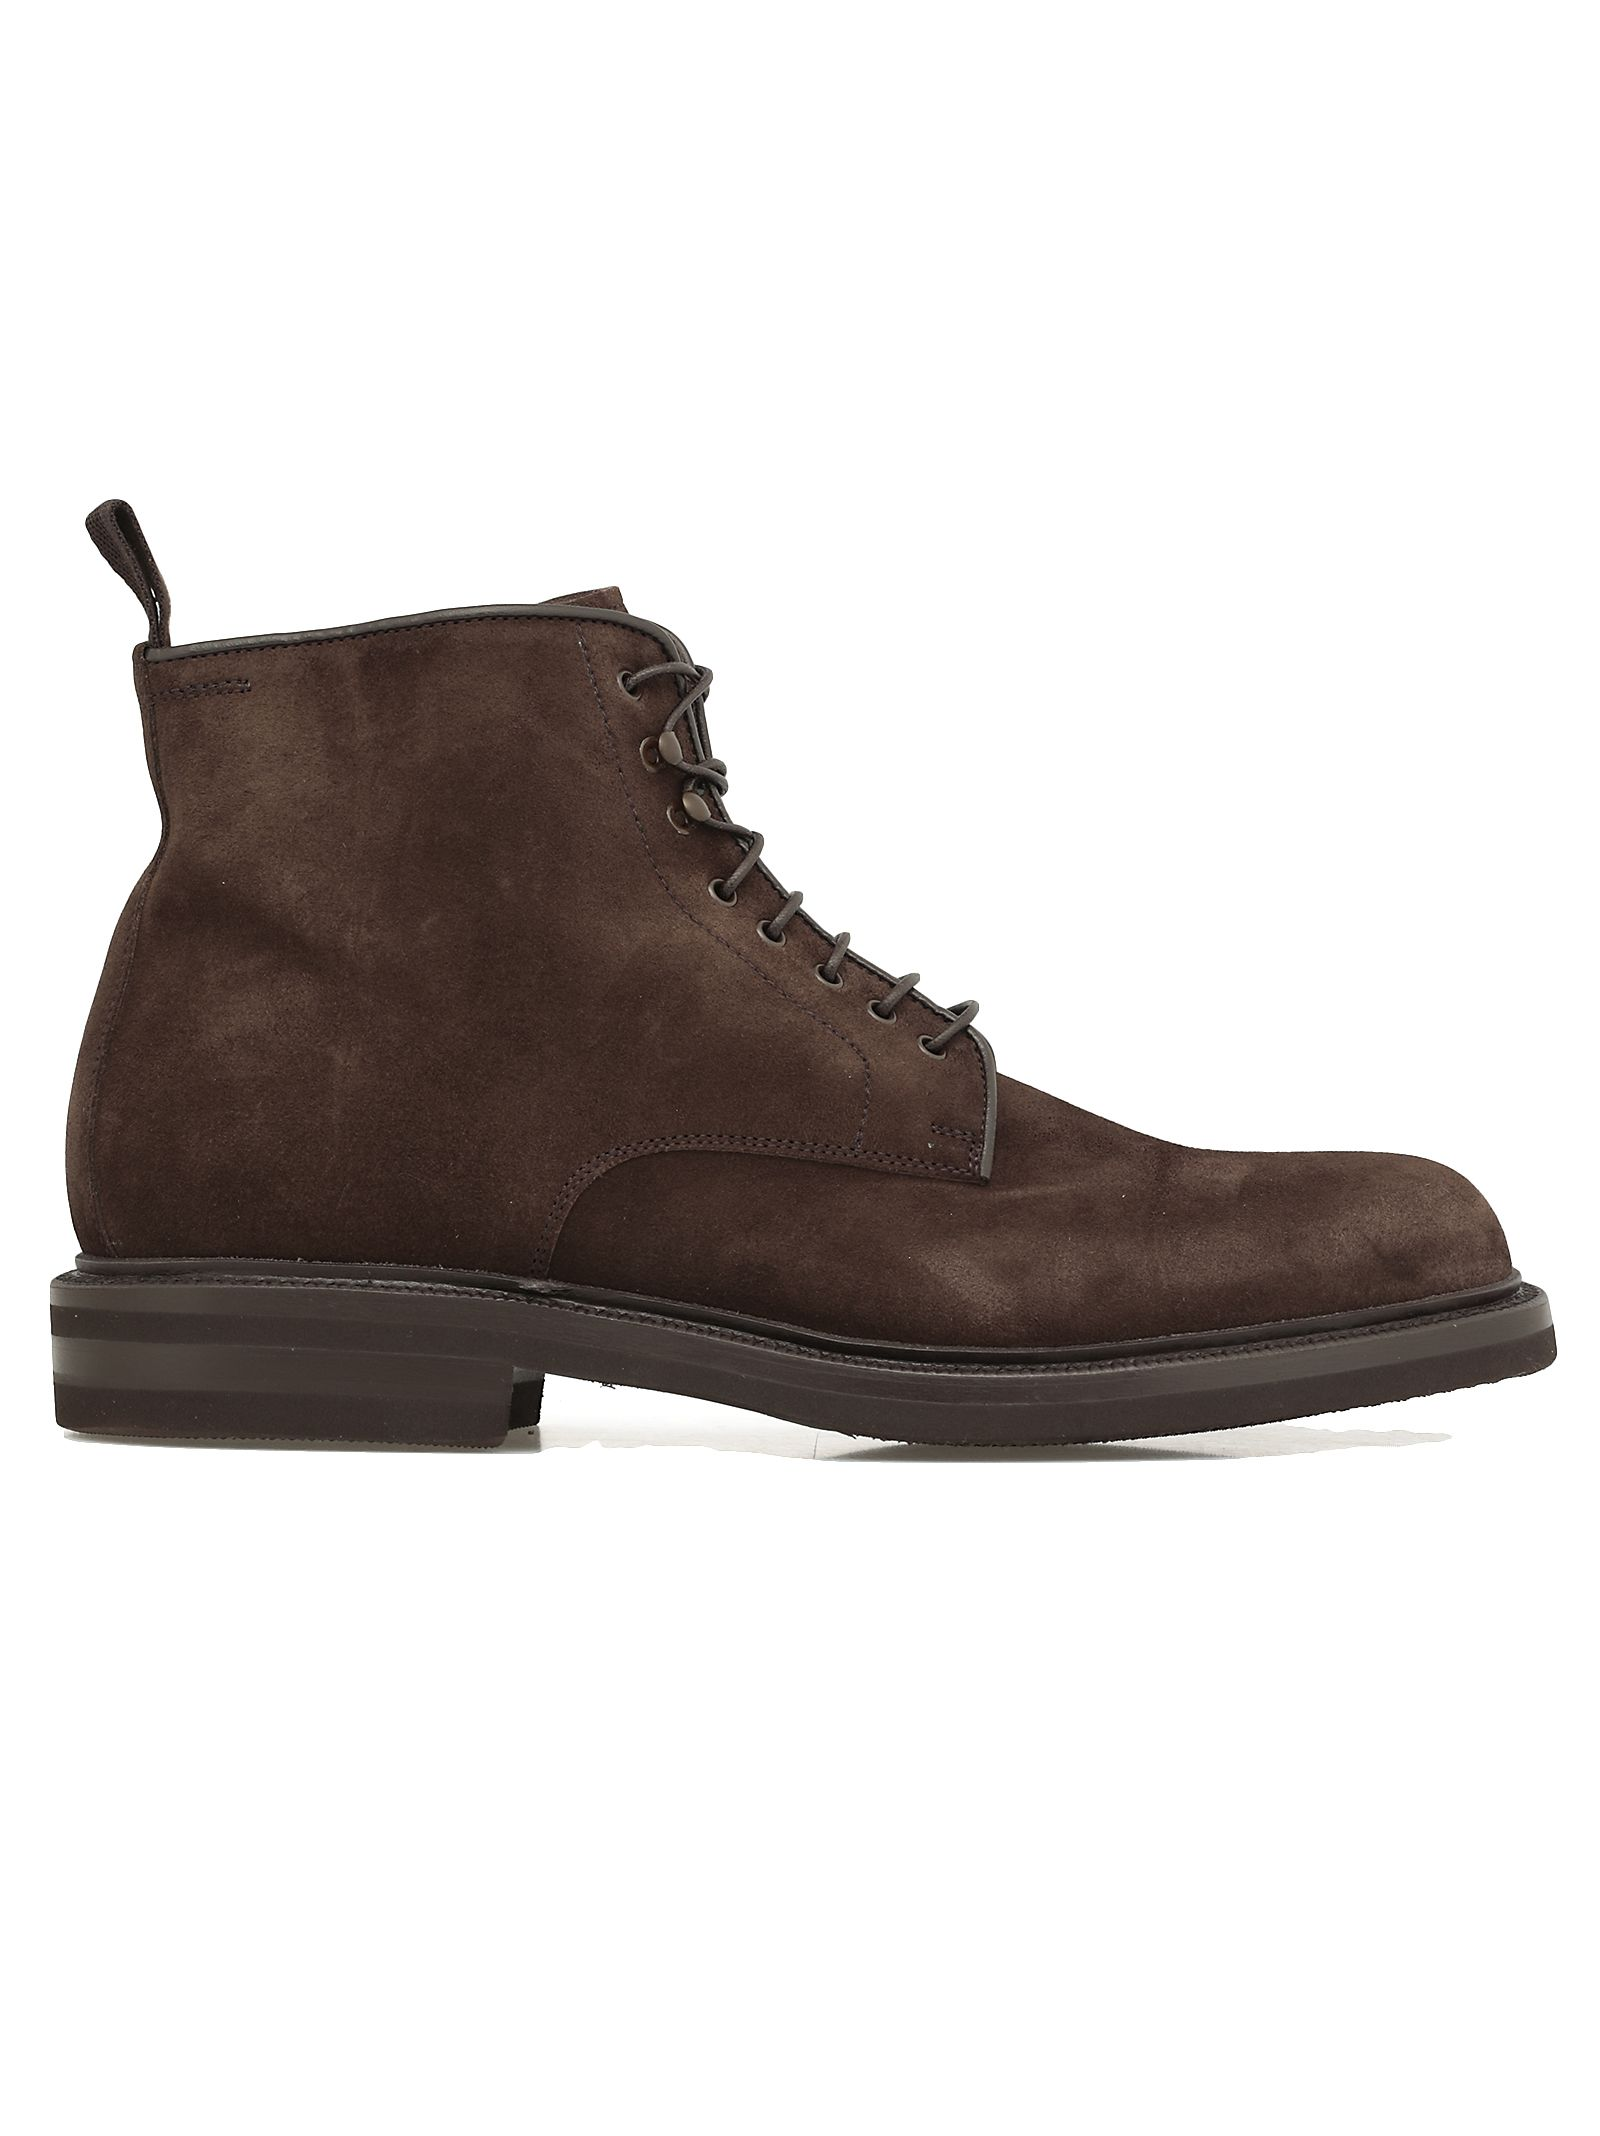 GREEN GEORGE Leather Boot in Brown